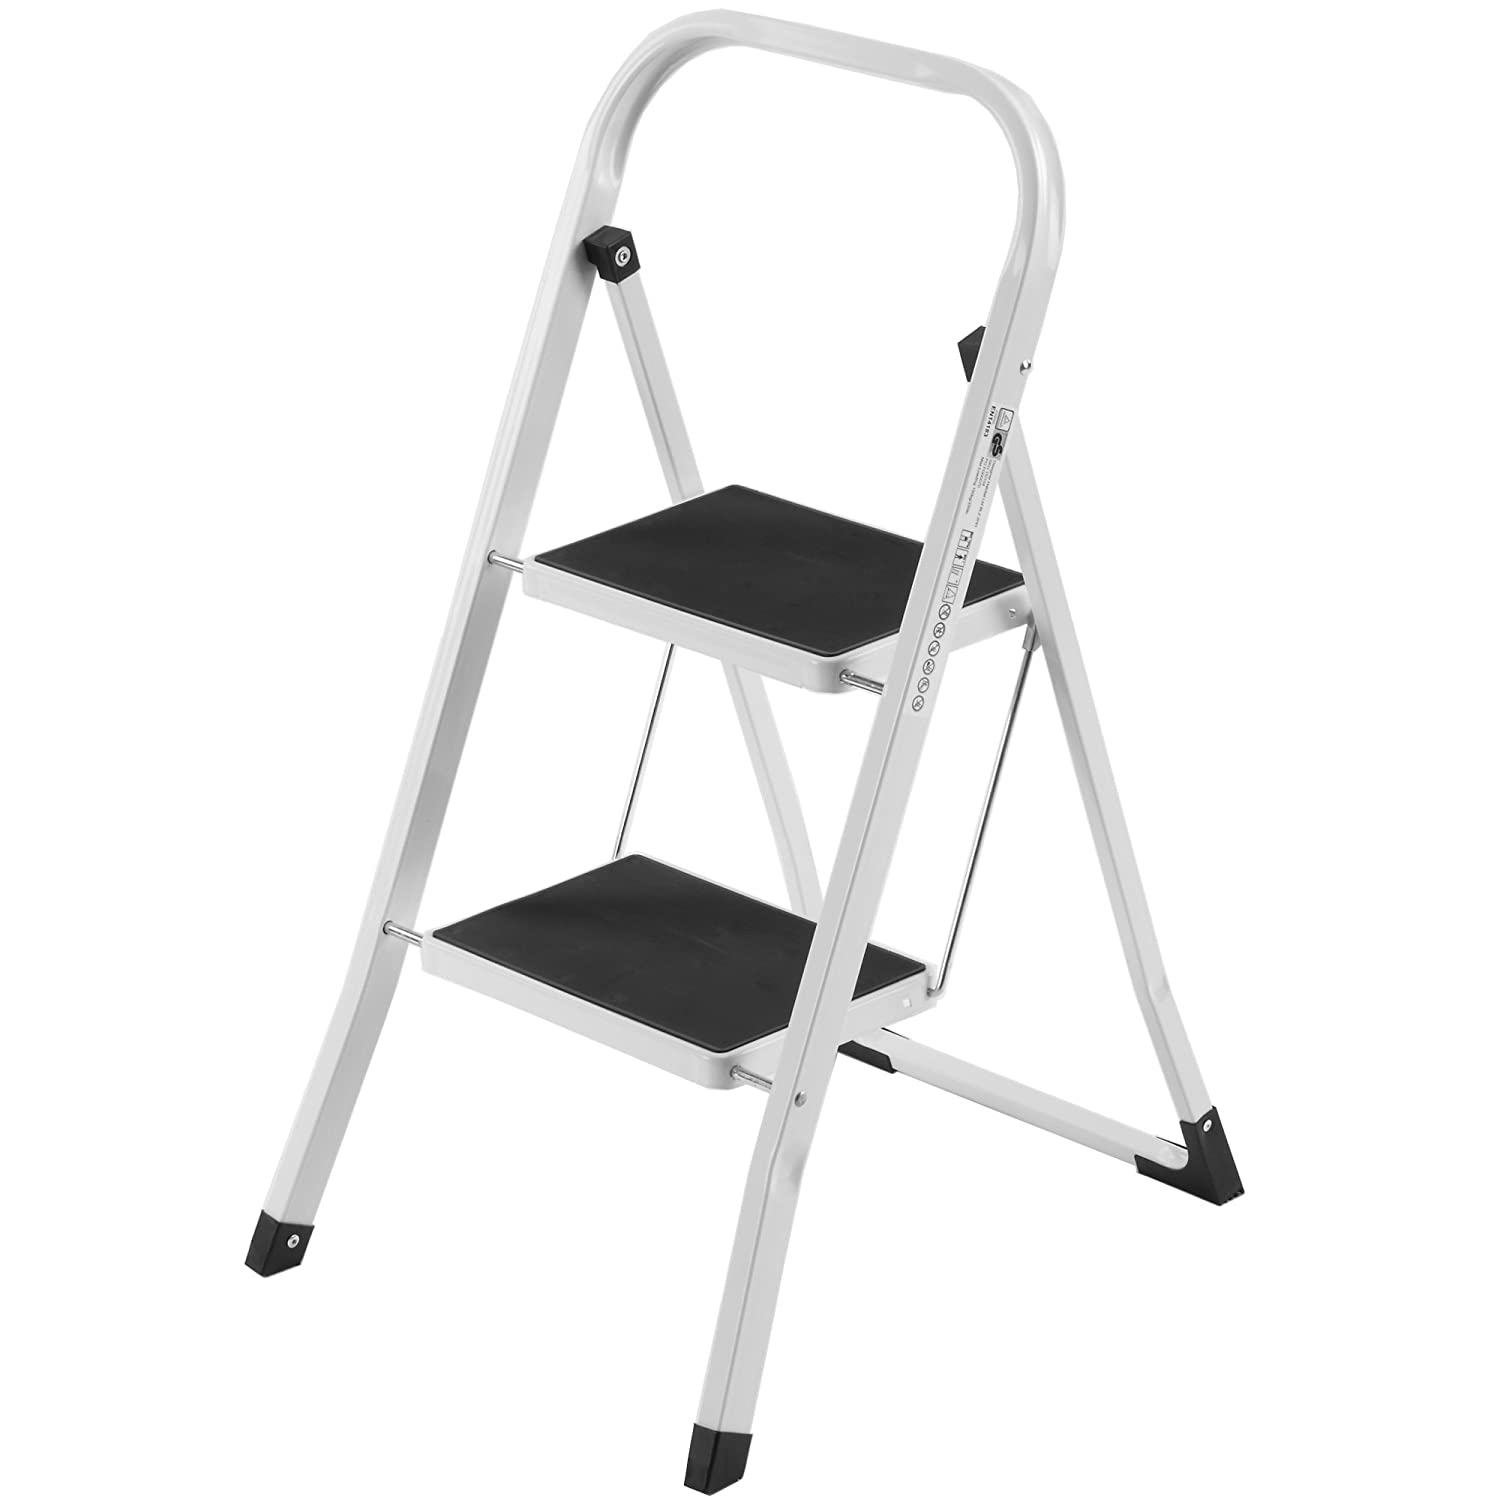 Best 2 Step Ladder Stool Under 30 Welcome To Dad Shopper